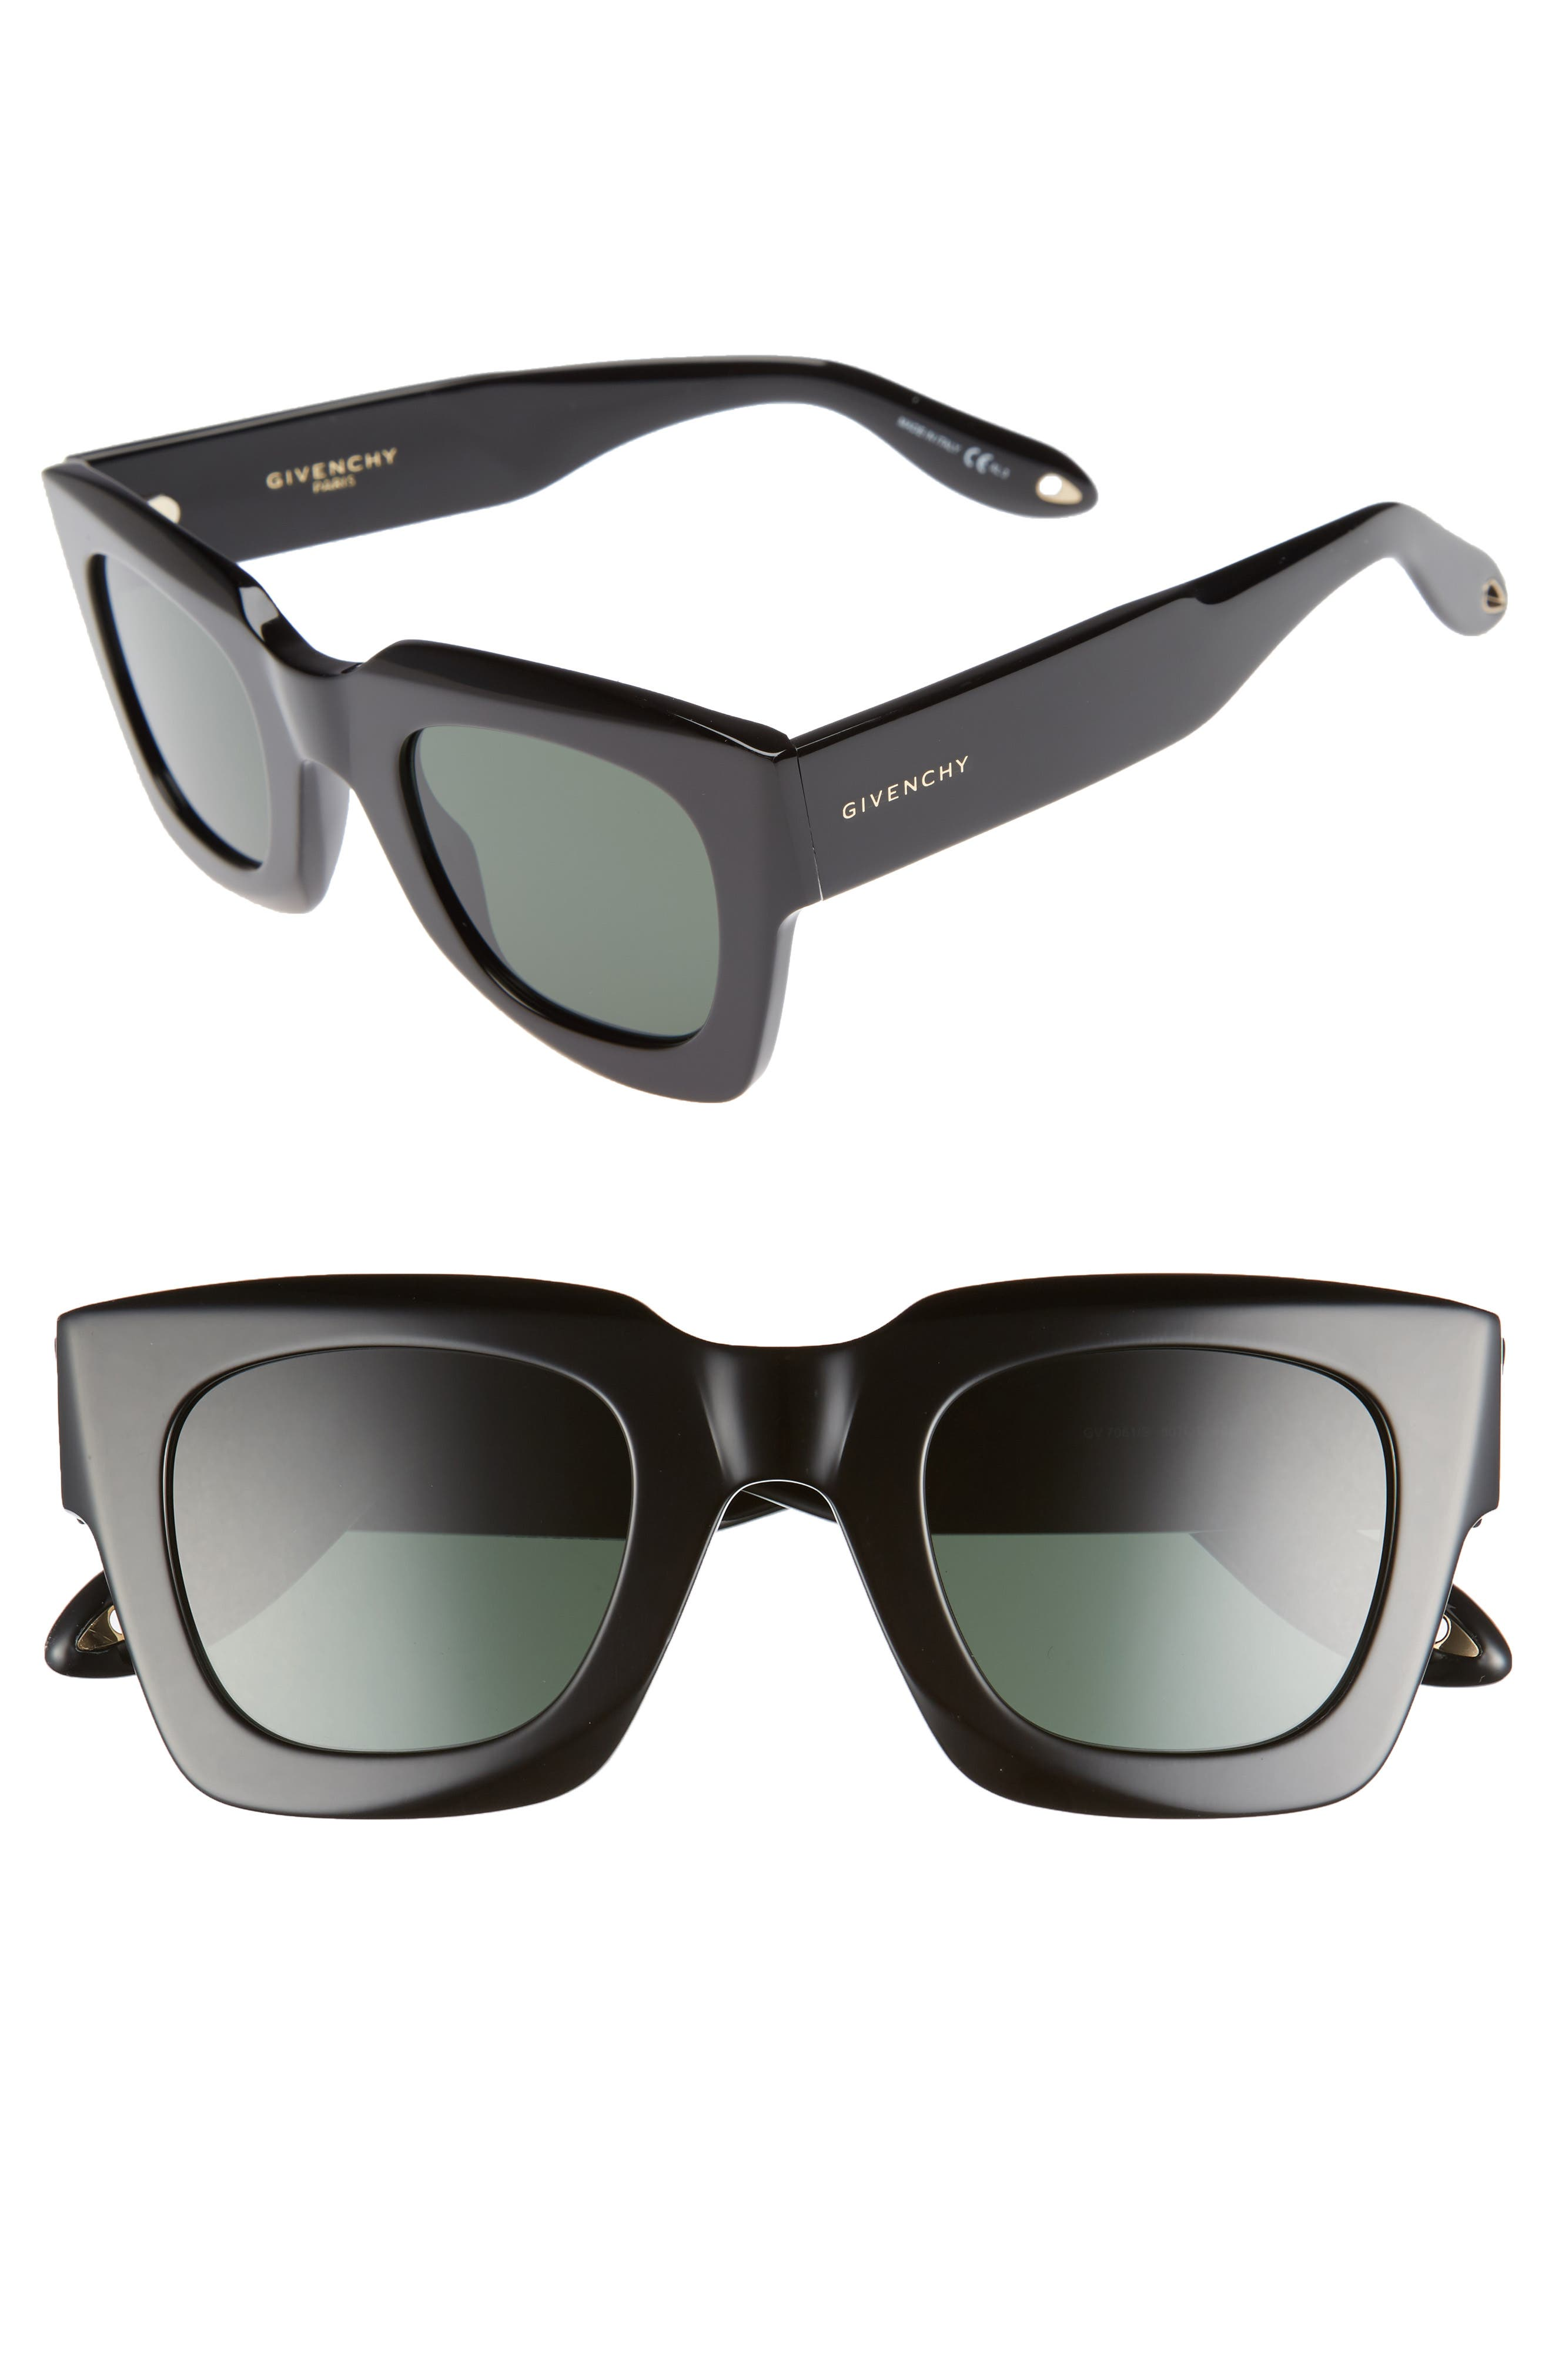 48mm Square Sunglasses,                         Main,                         color, BLACK